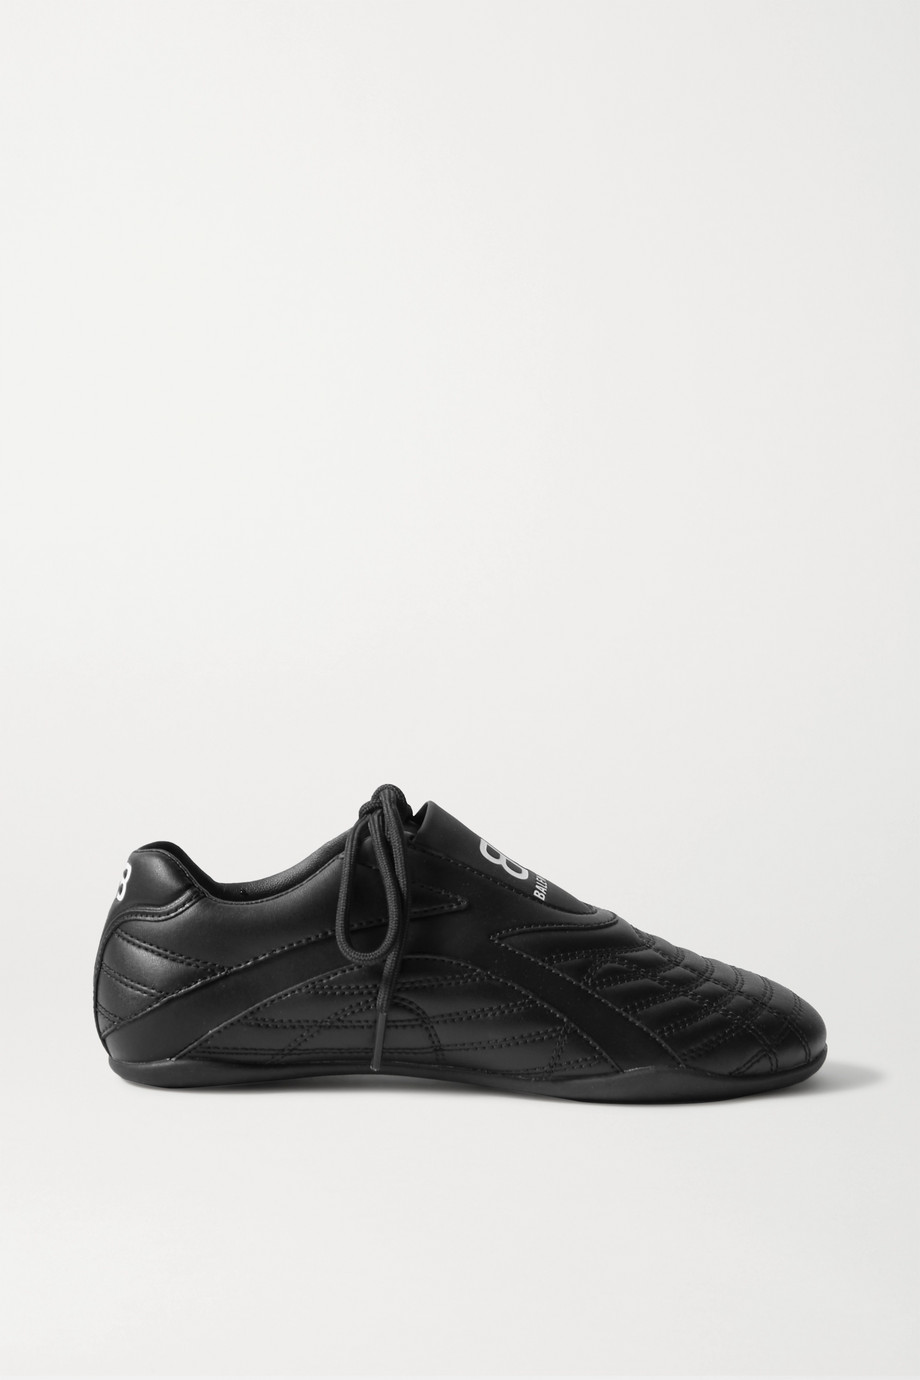 Balenciaga Zen quilted faux leather sneakers